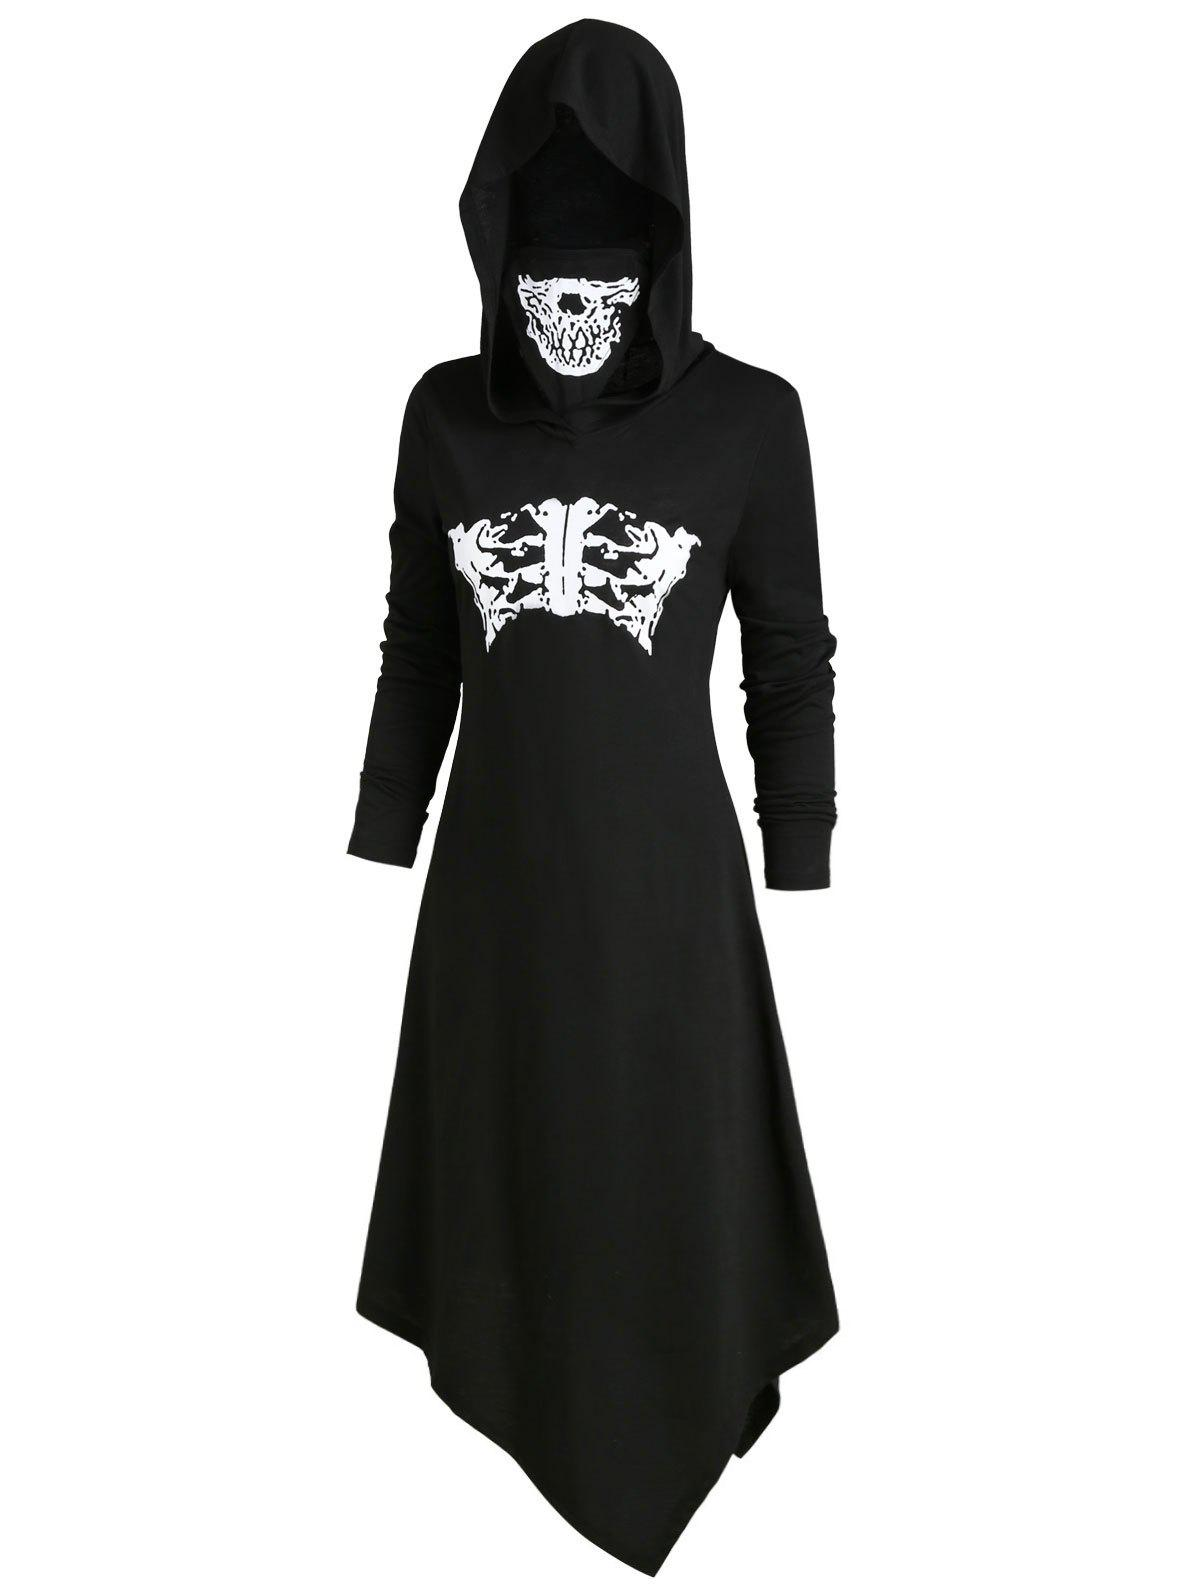 Affordable Skeleton Long Sleeves Halloween Hooded Dress with Mask